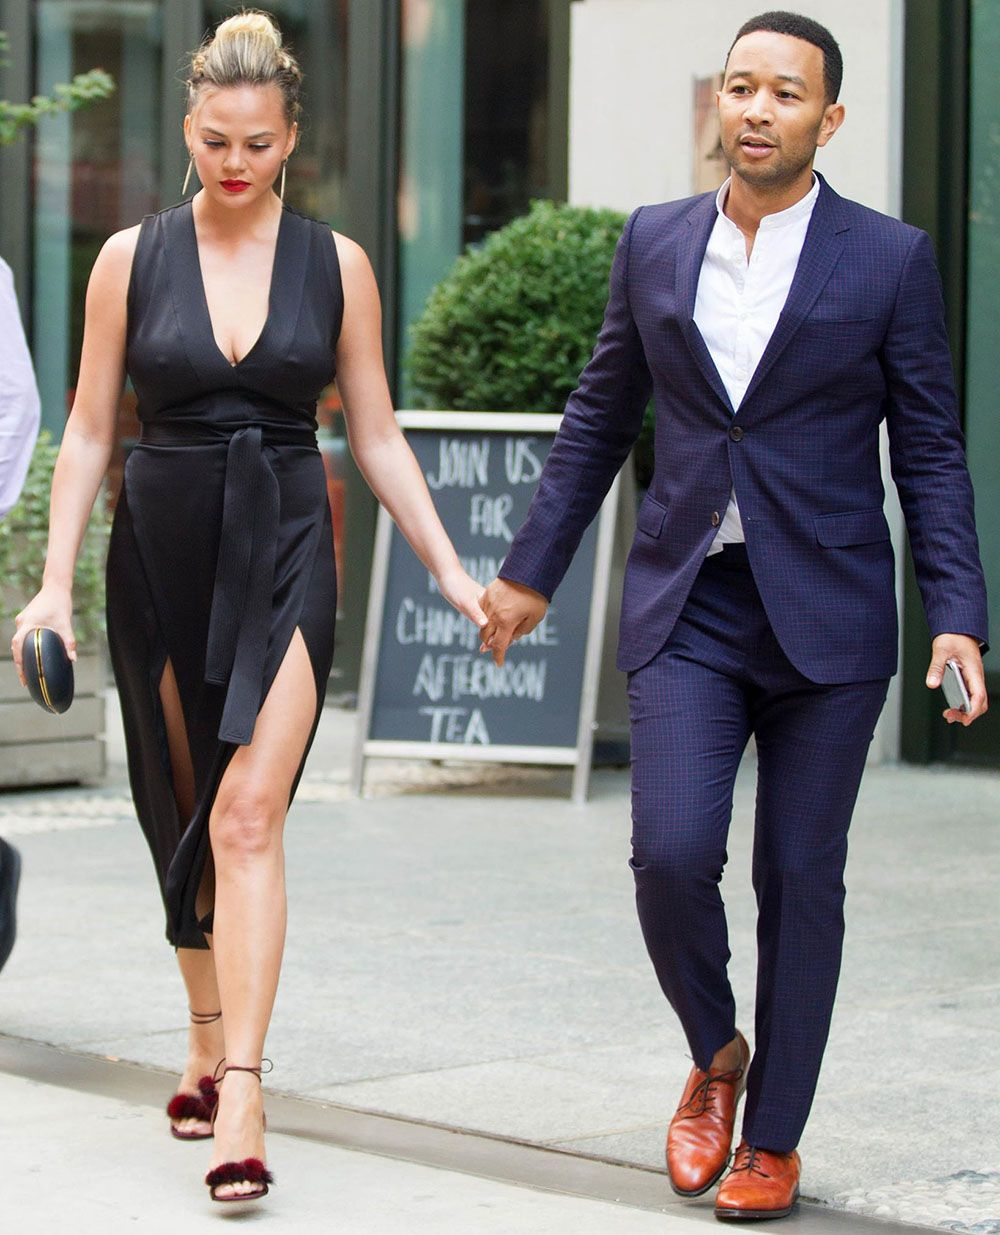 Chrissy Teigen and John Legend Look Stunning as They Hit the Skies in a Private…